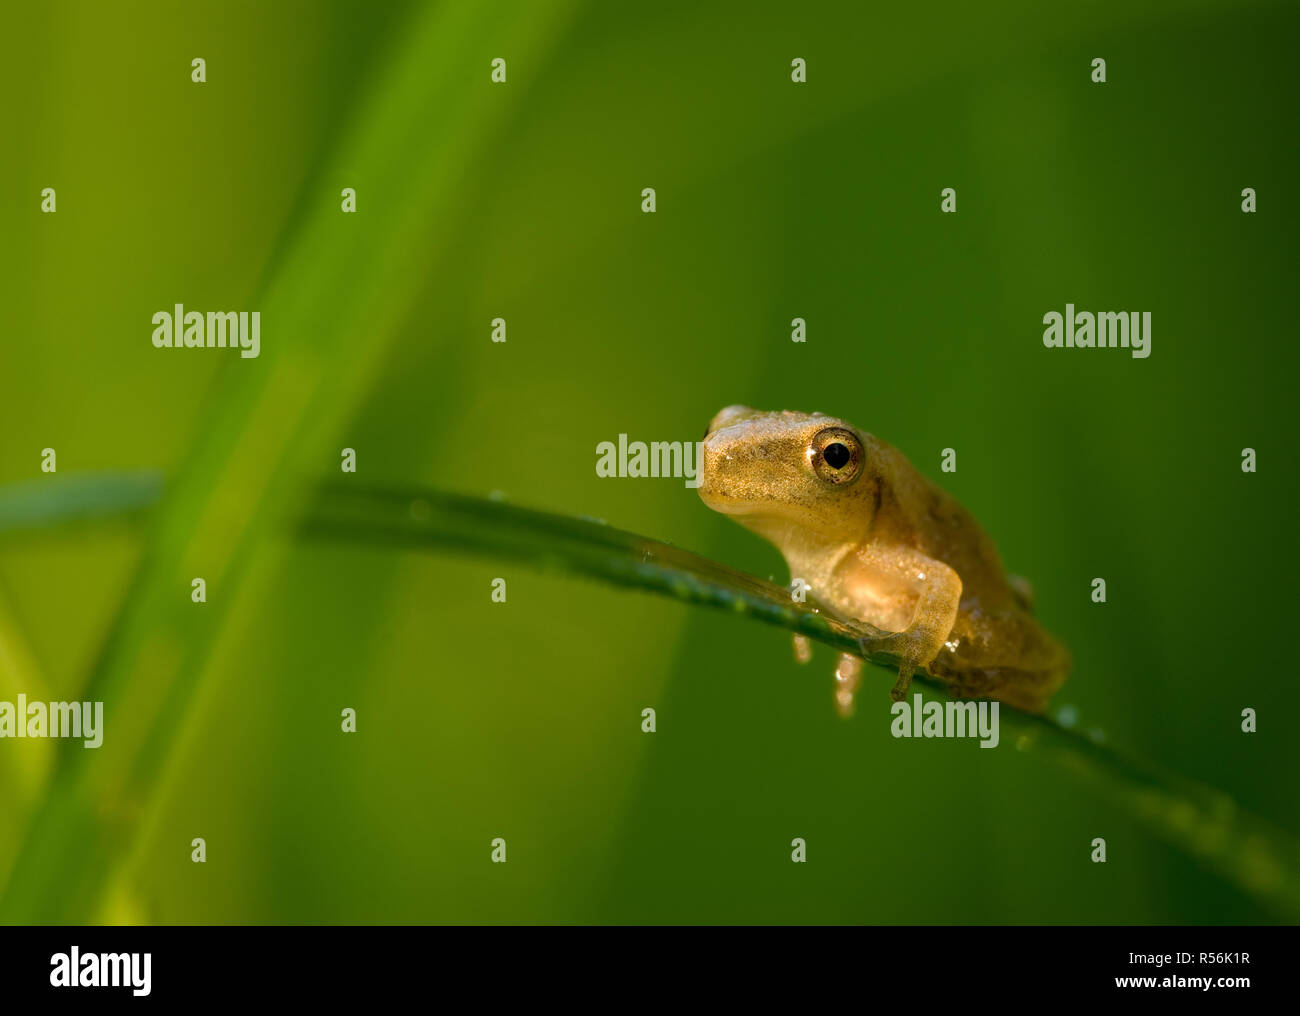 Baby spring peeper (Hyla crucifer) on dew-covered grass in swamp near Ivy Creek in Charlottesville, Virginia, USA. Frog is only 1/4 inch (6mm) long. - Stock Image